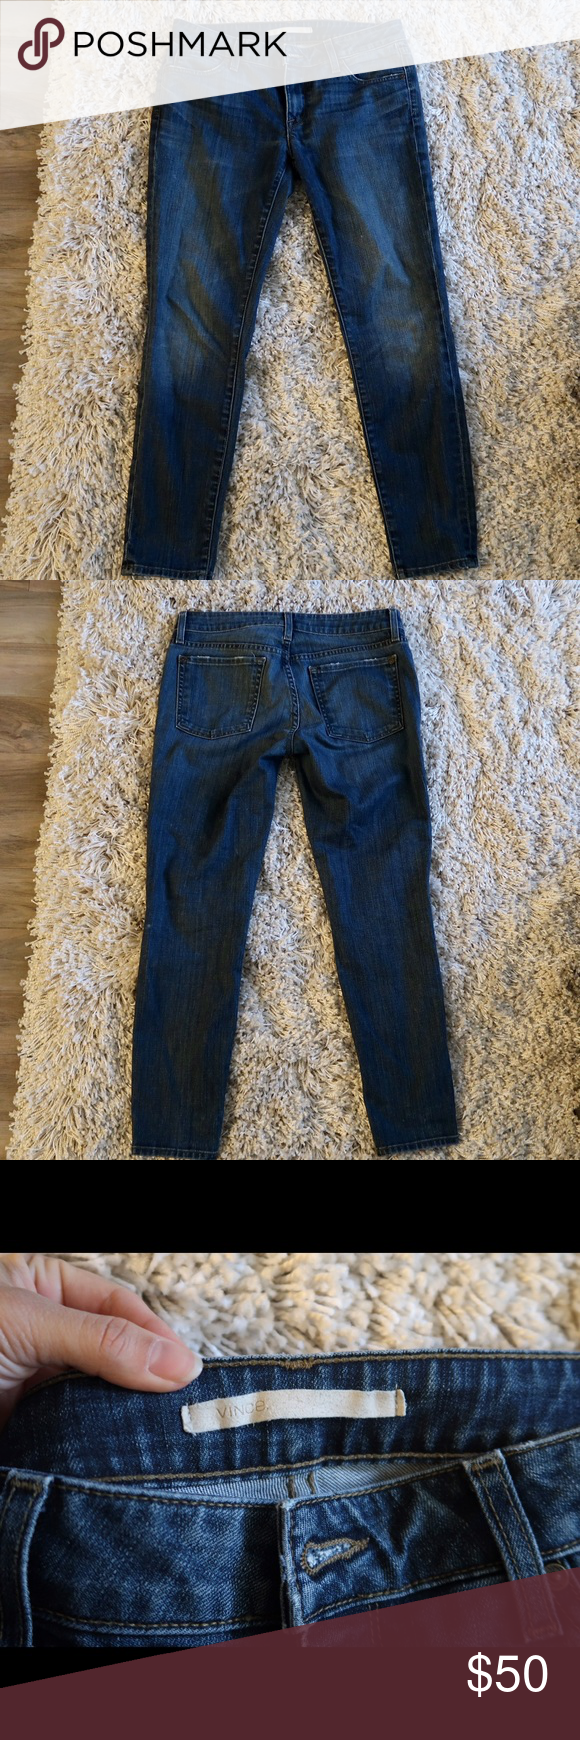 Vince Jeans Great condition, no wears and tears! Amazingly stylish!  Open to offers 🙂 Vince Jeans Straight Leg